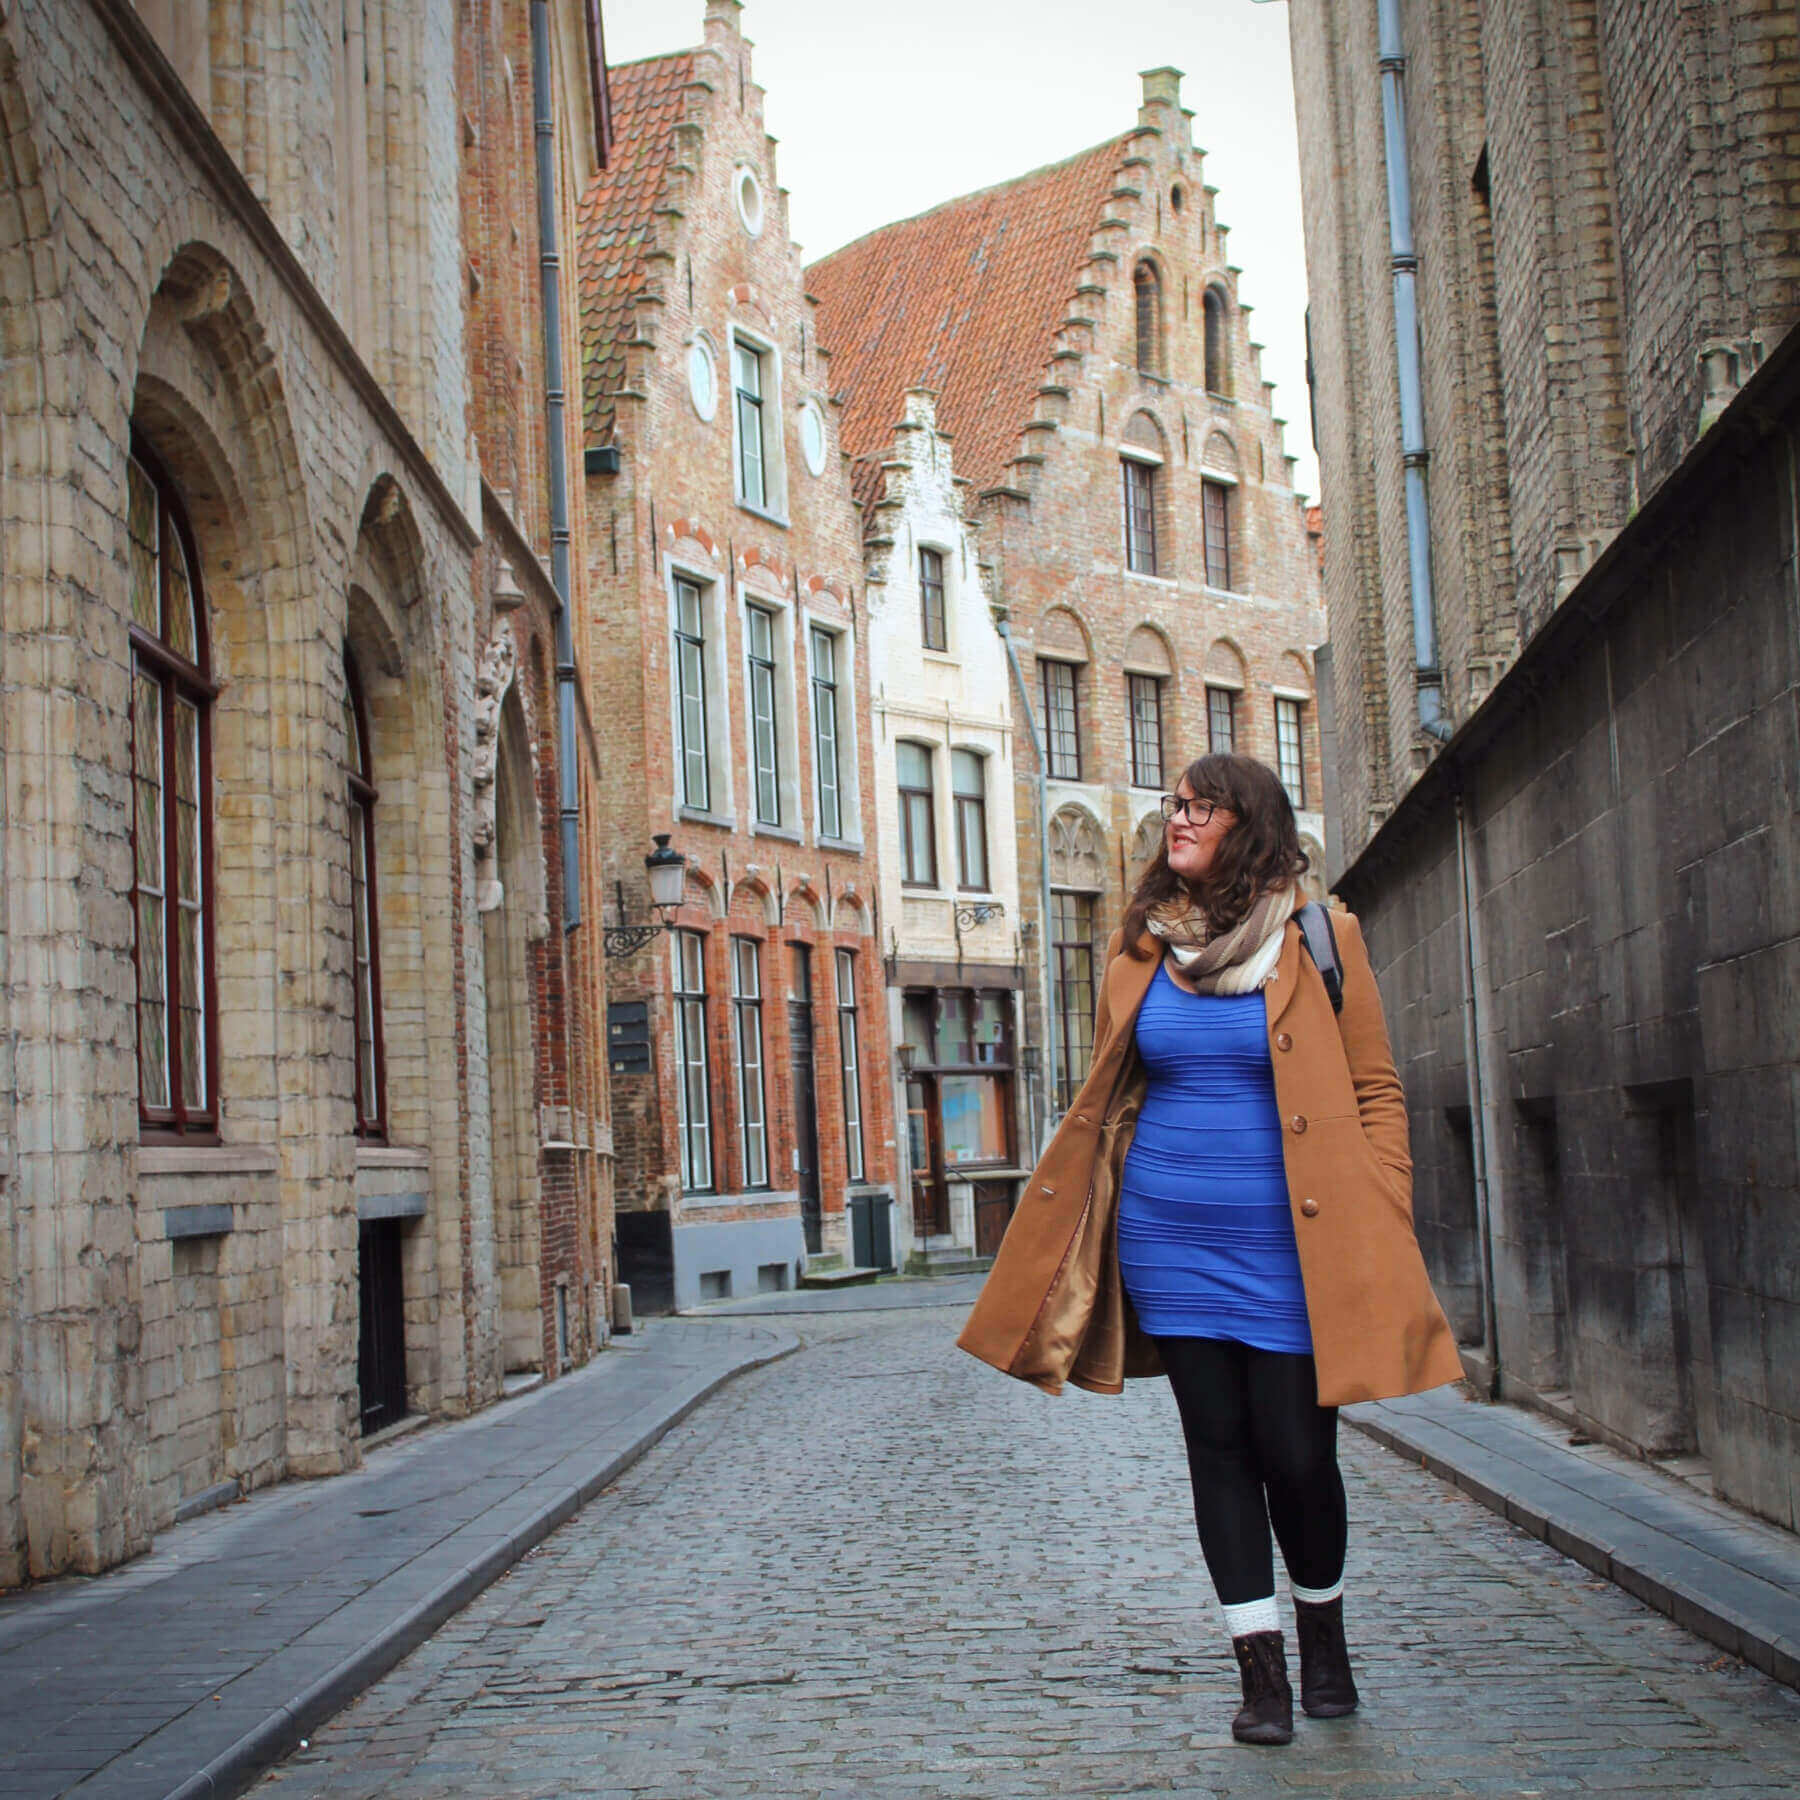 Wandering the streets of Brugges, Belgium.